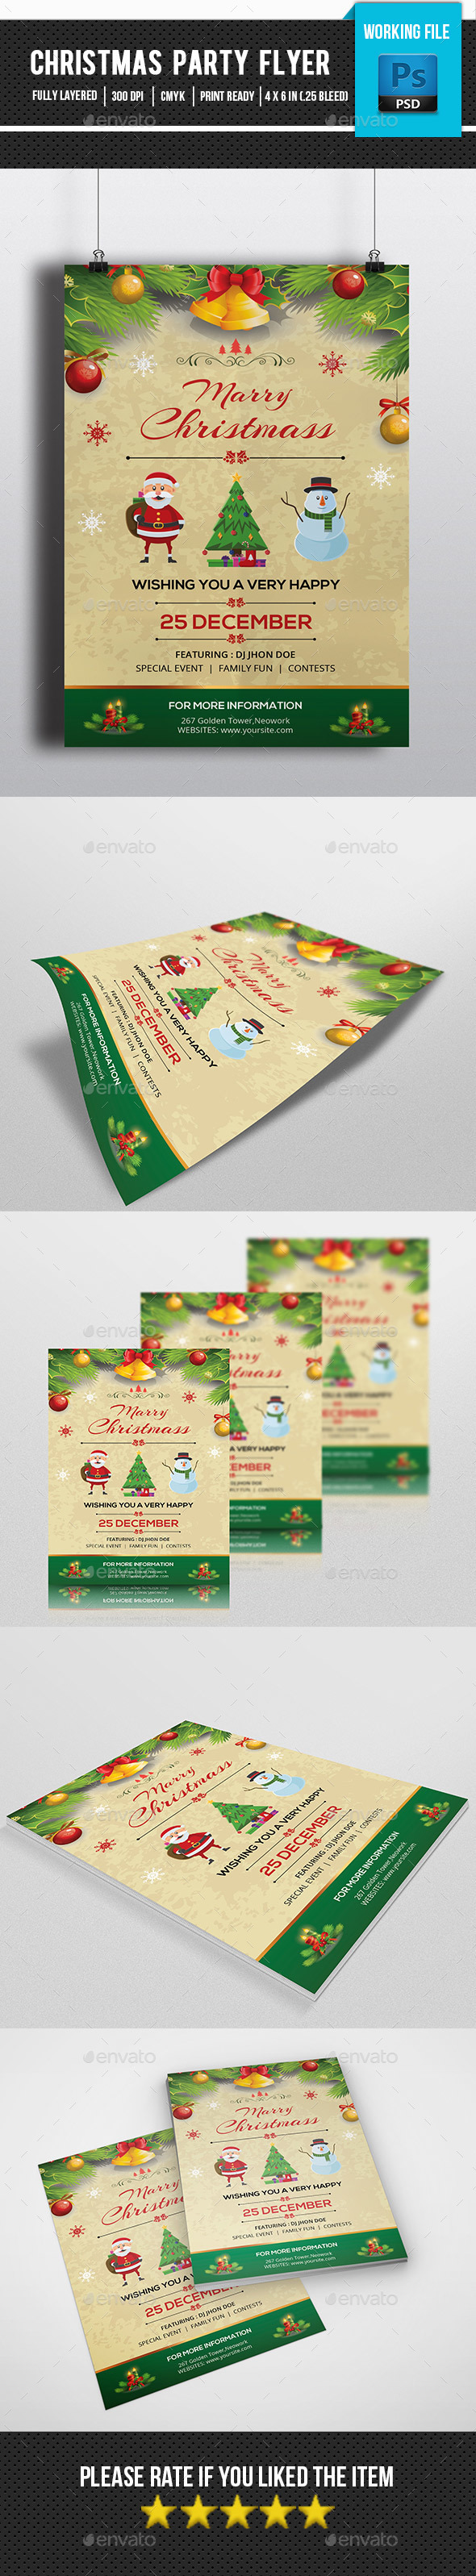 Retro Christmas Party Flyer-V123 - Clubs & Parties Events